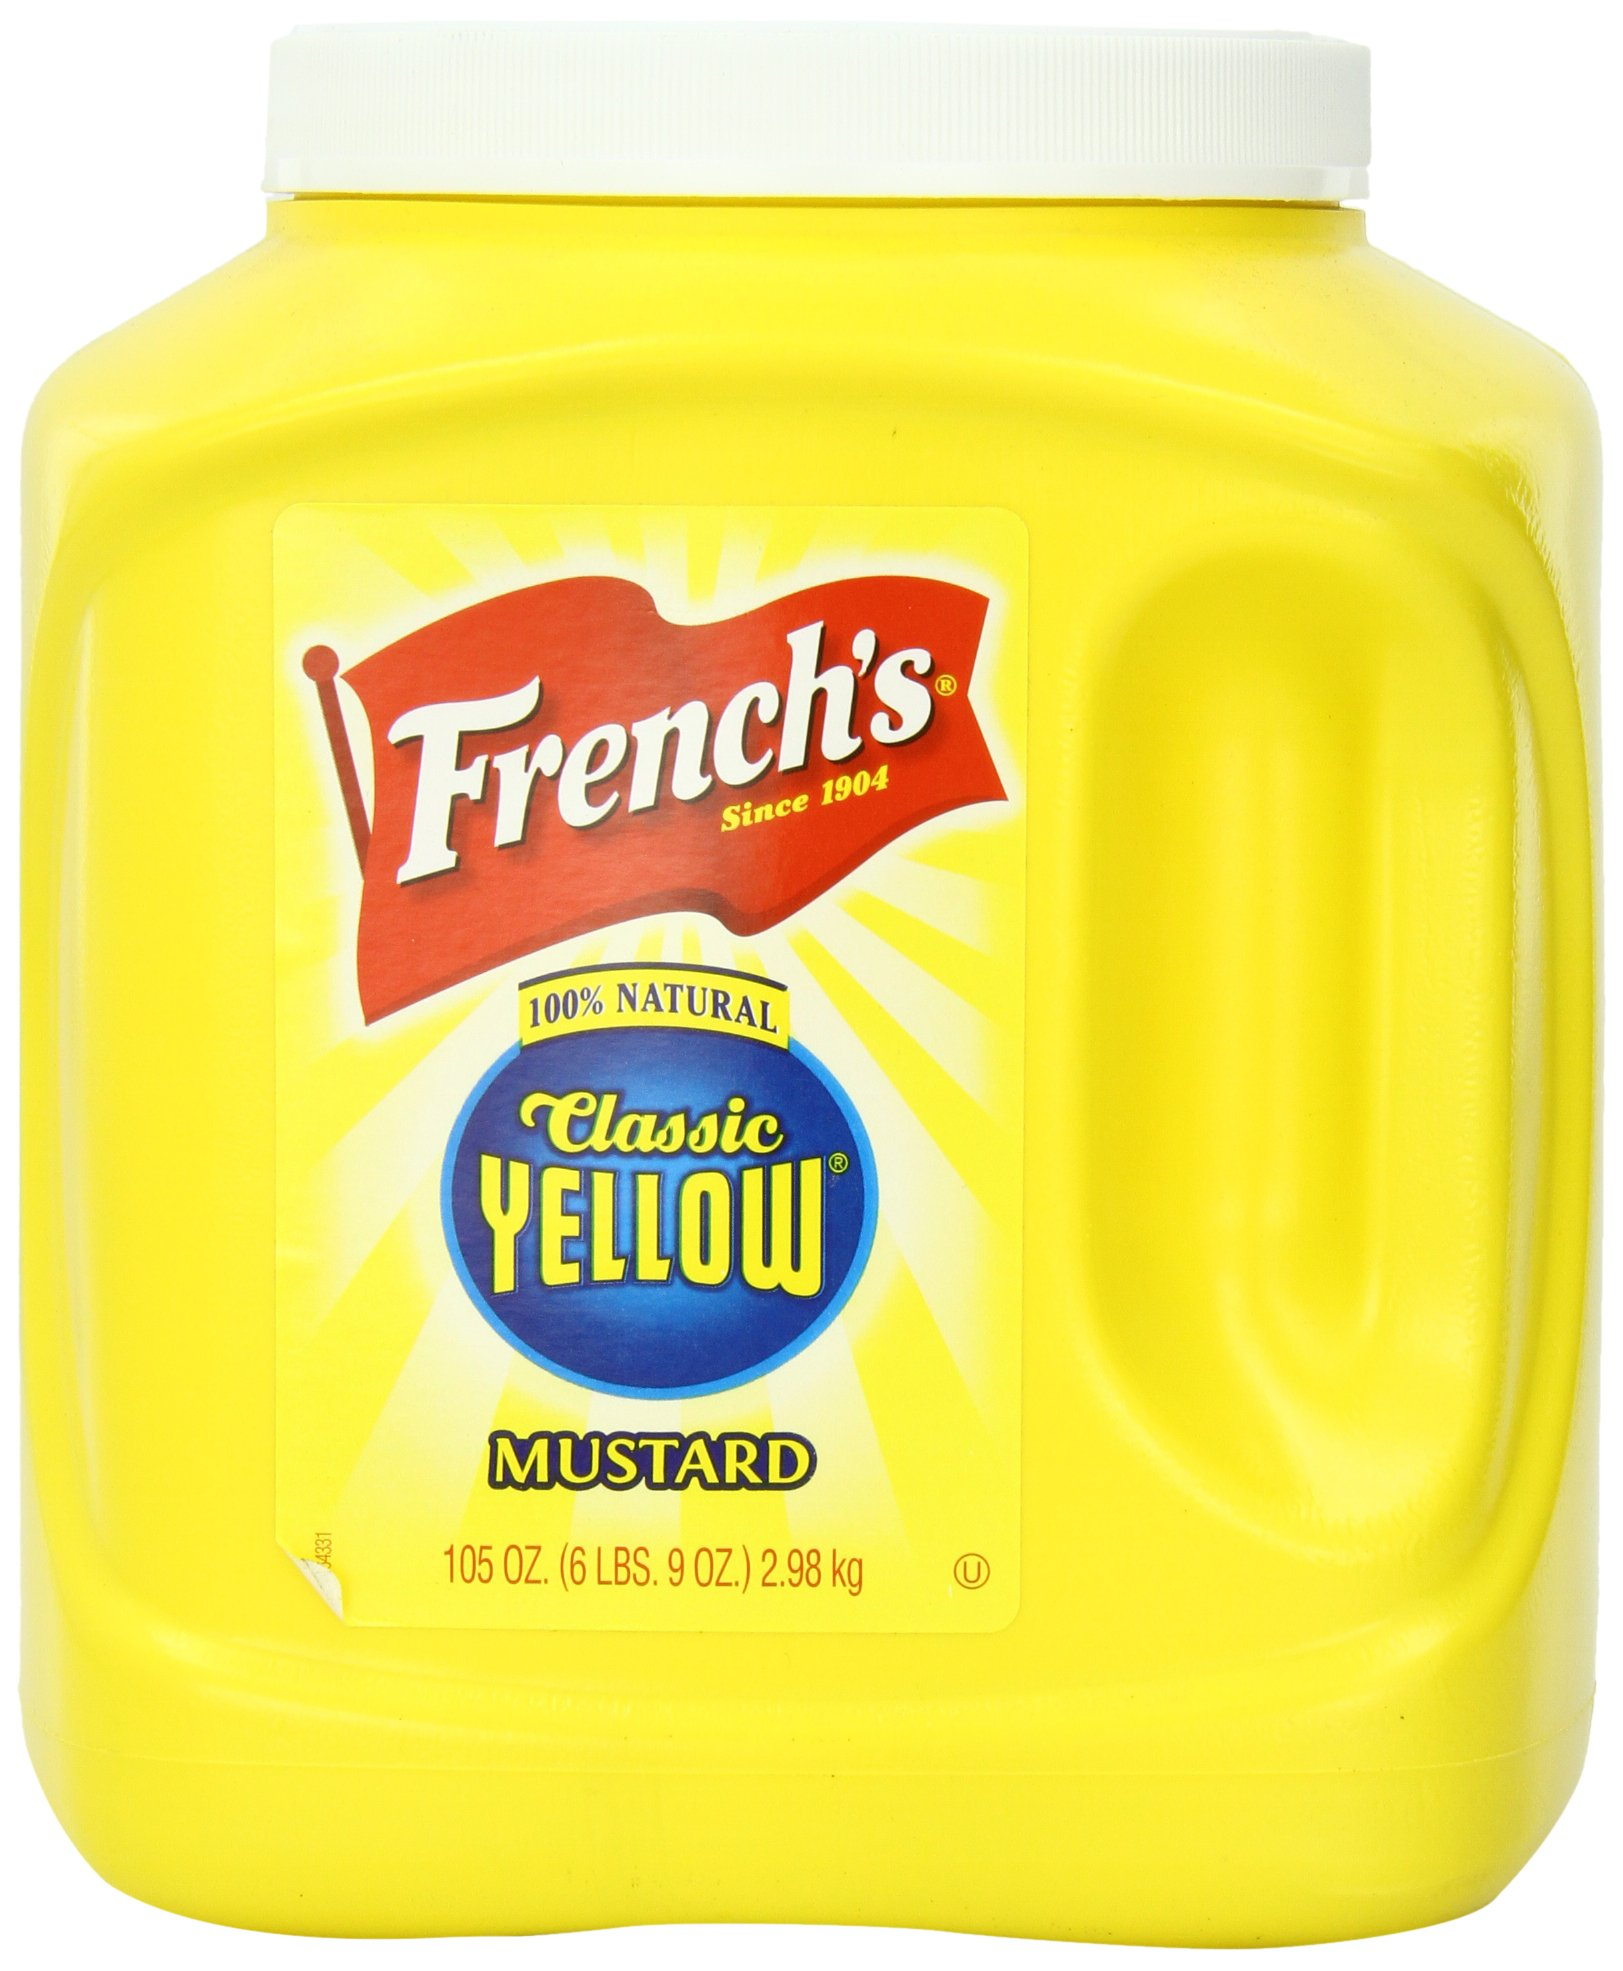 French's Classic Yellow Mustard, 105.0 OZ by The French's Food Company LLC